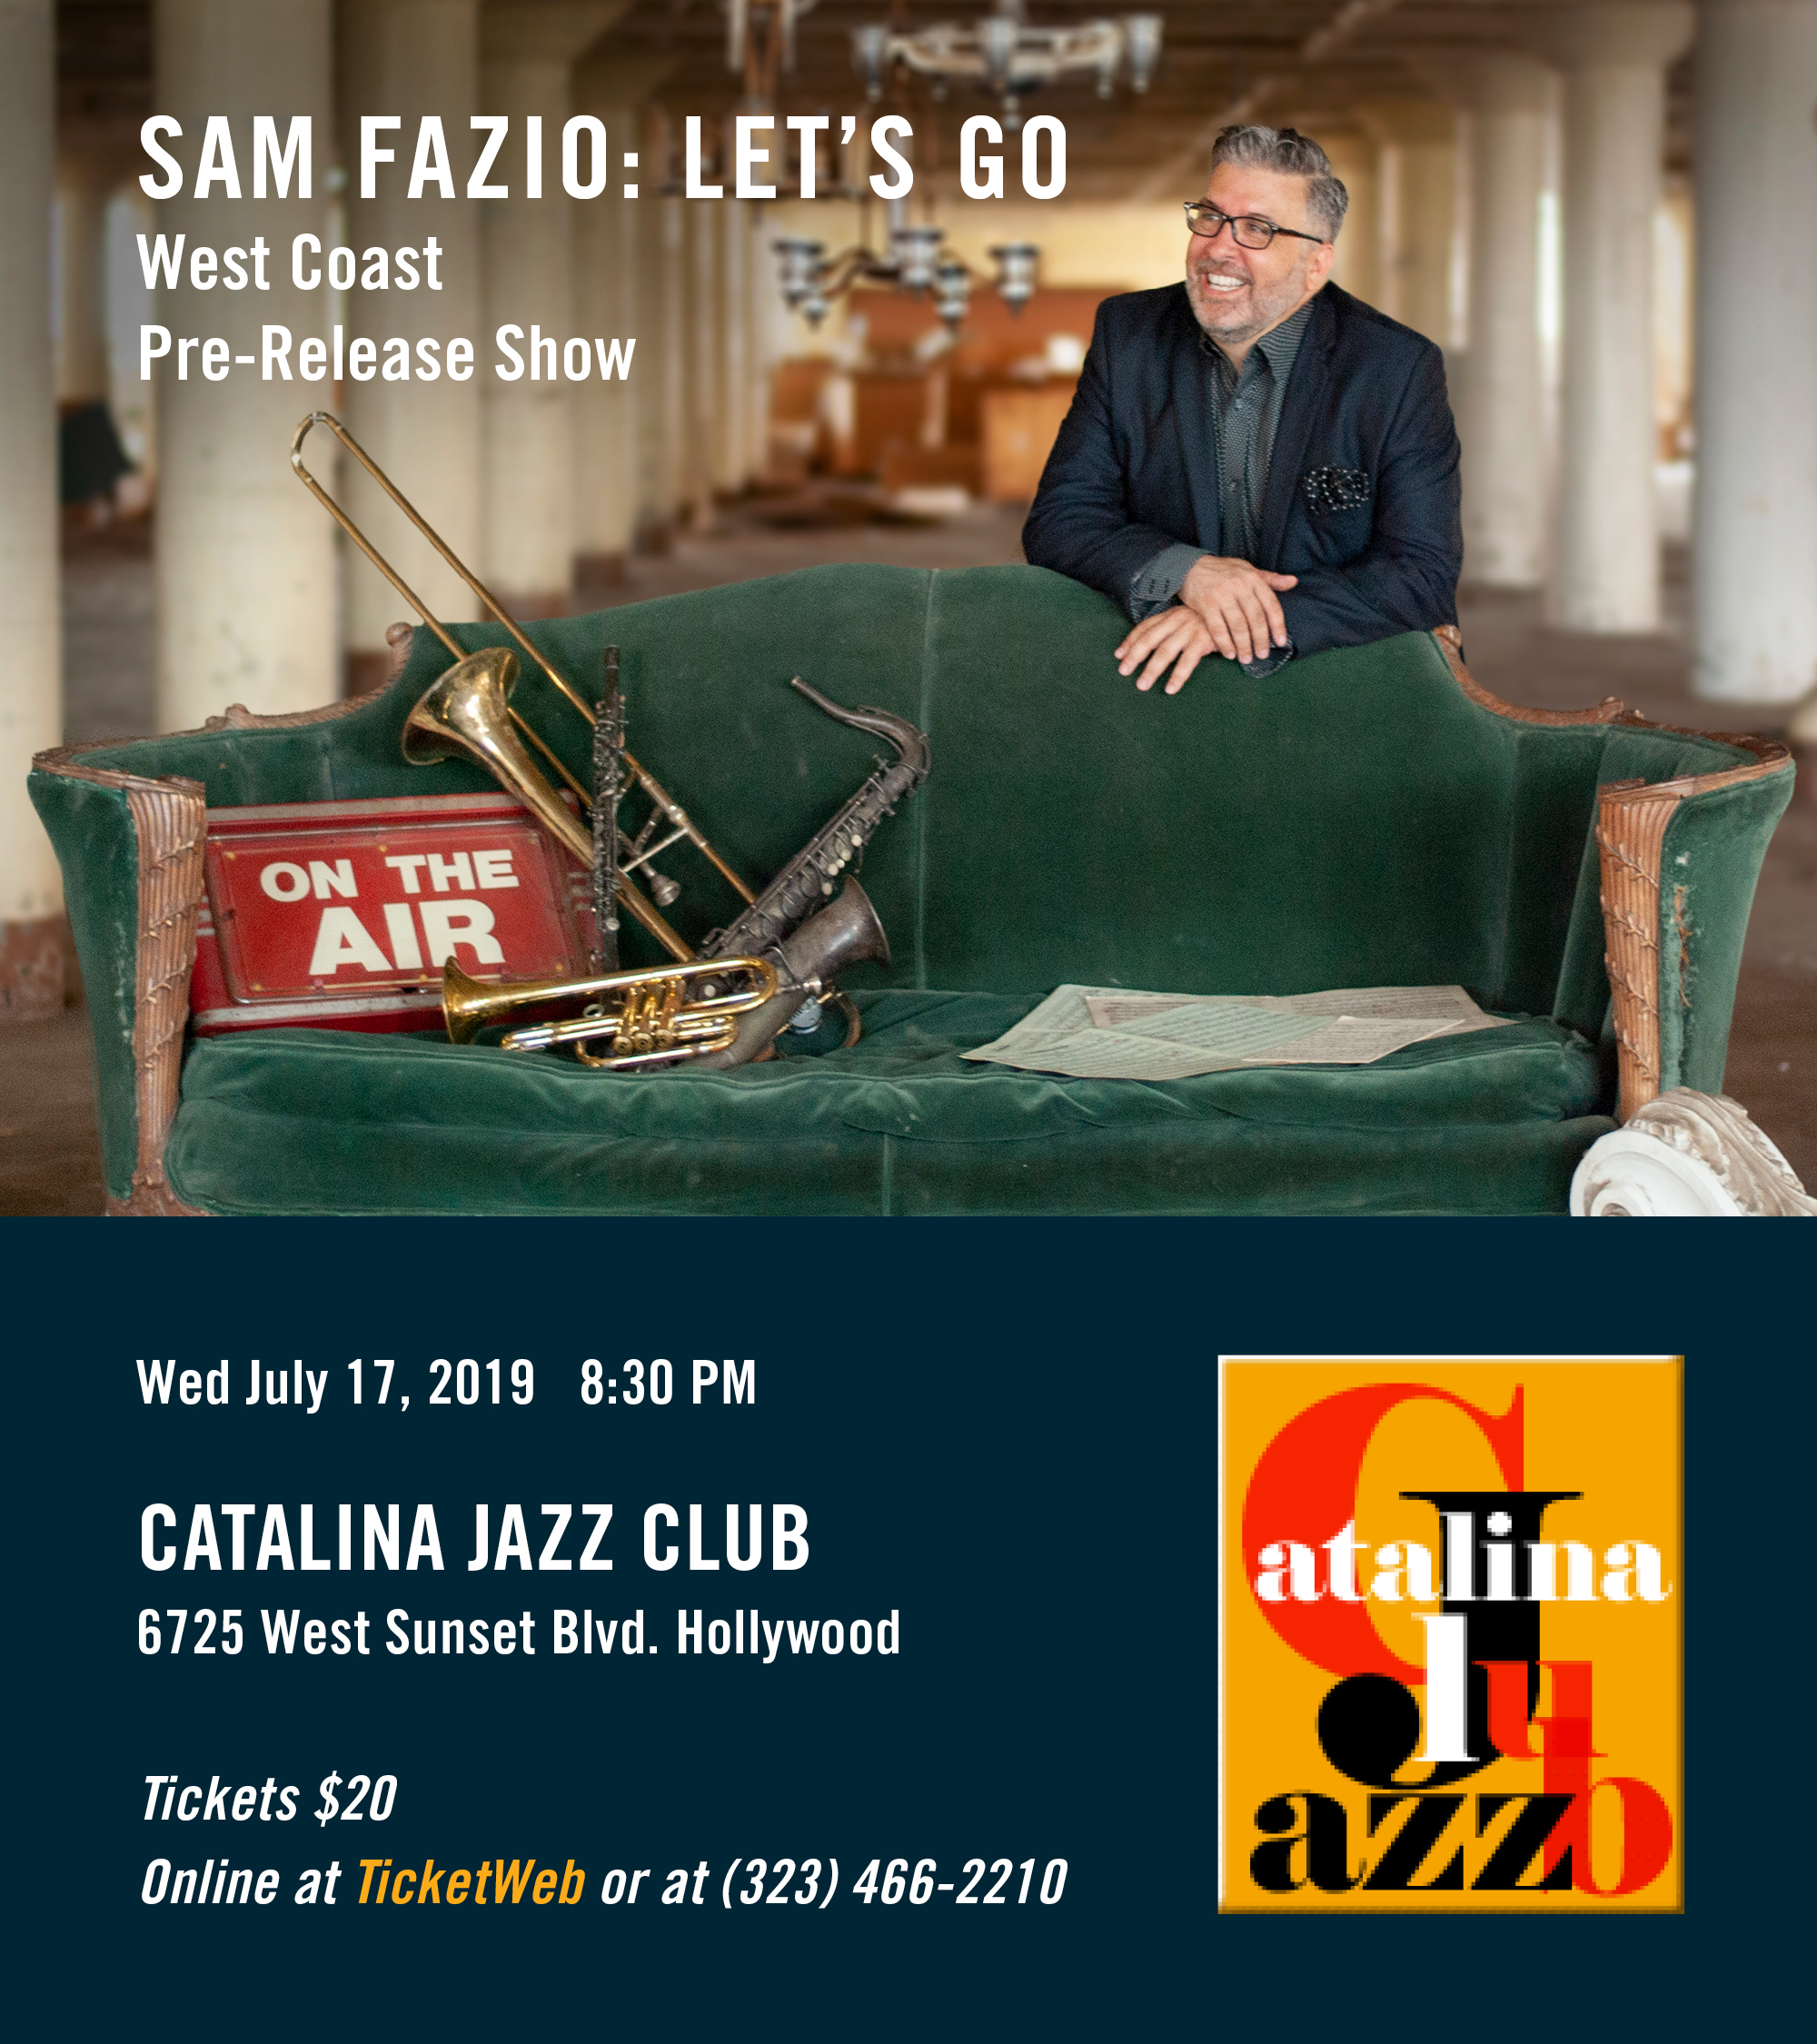 Sam Fazio West Coast Pre-Release Show at Catalina Jazz Club on July 17th - New CD Features Tuck & Patti!